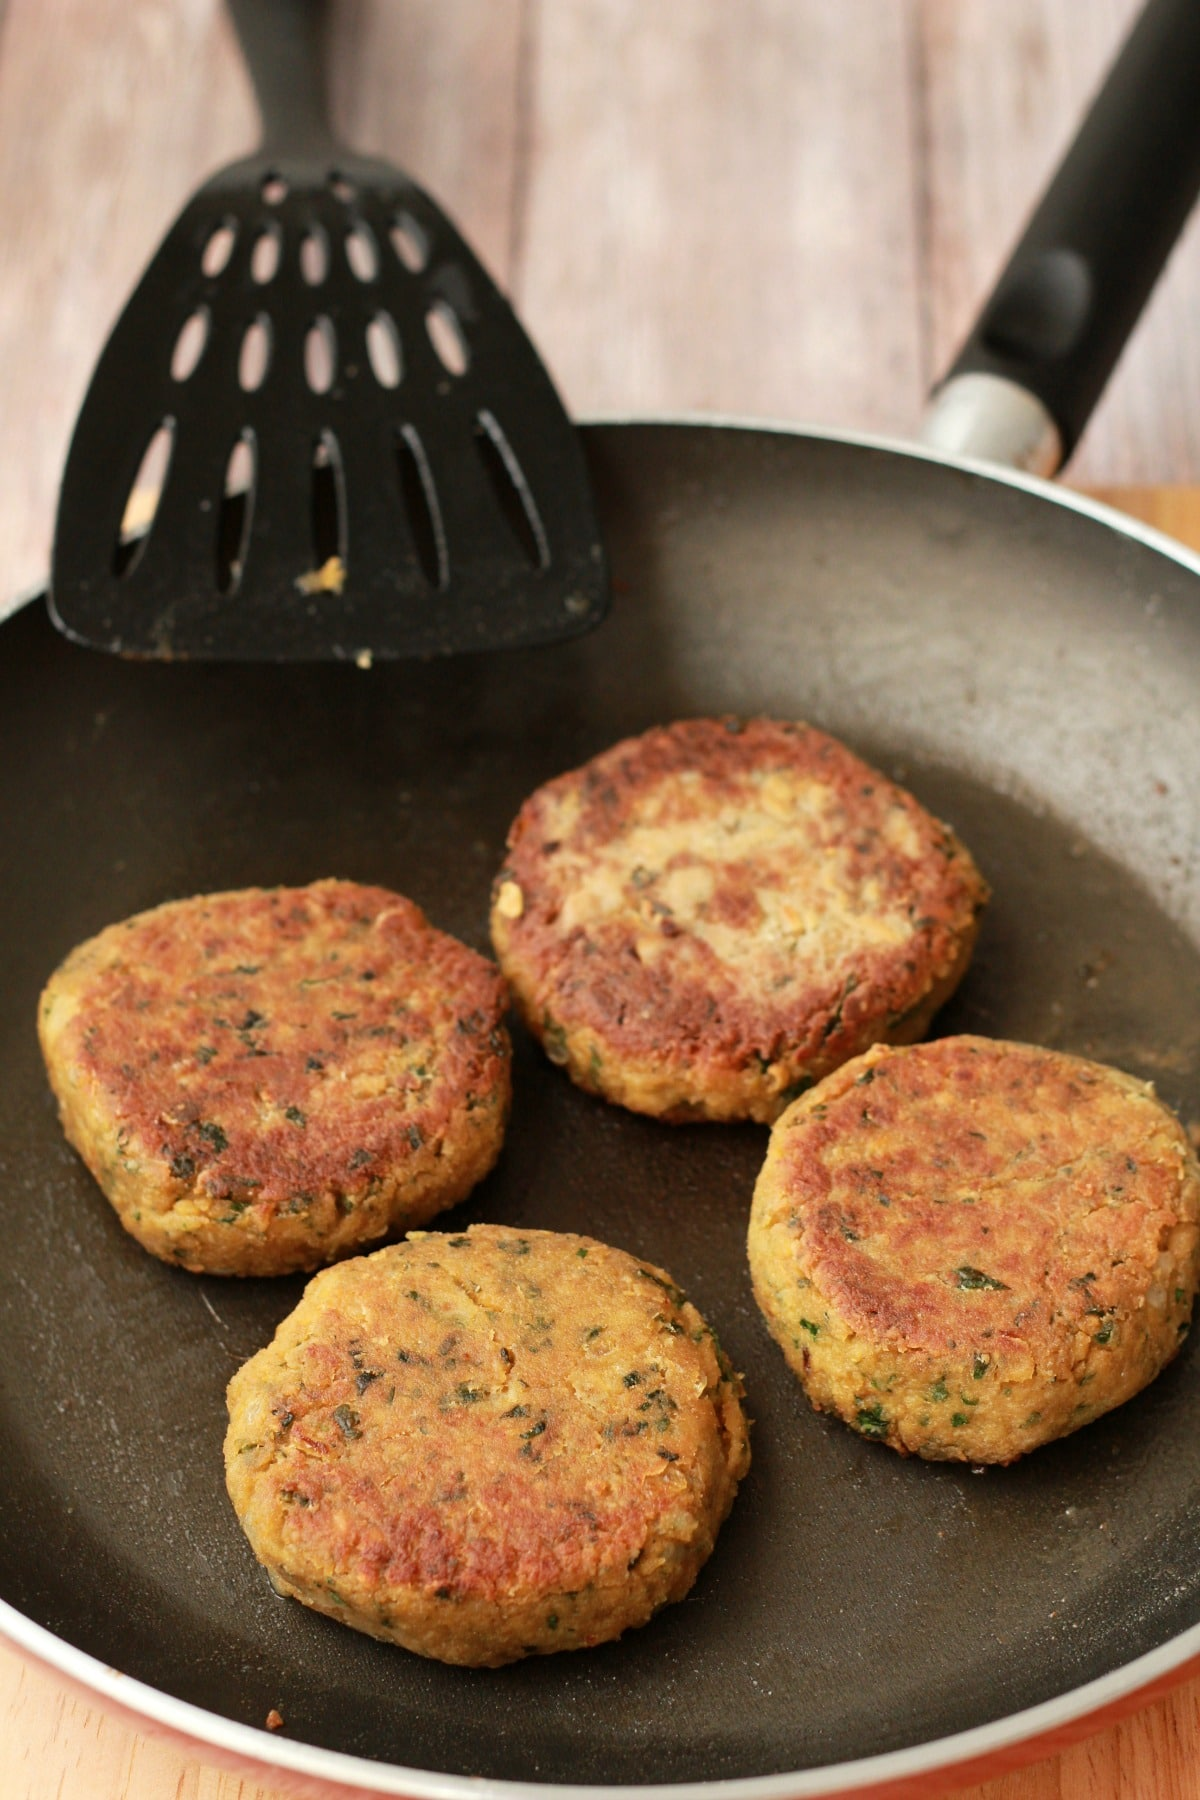 The Easiest Vegan Chickpea Burgers #vegan #lovingitvegan #chickpeaburgers #veggieburgers #glutenfree #entree